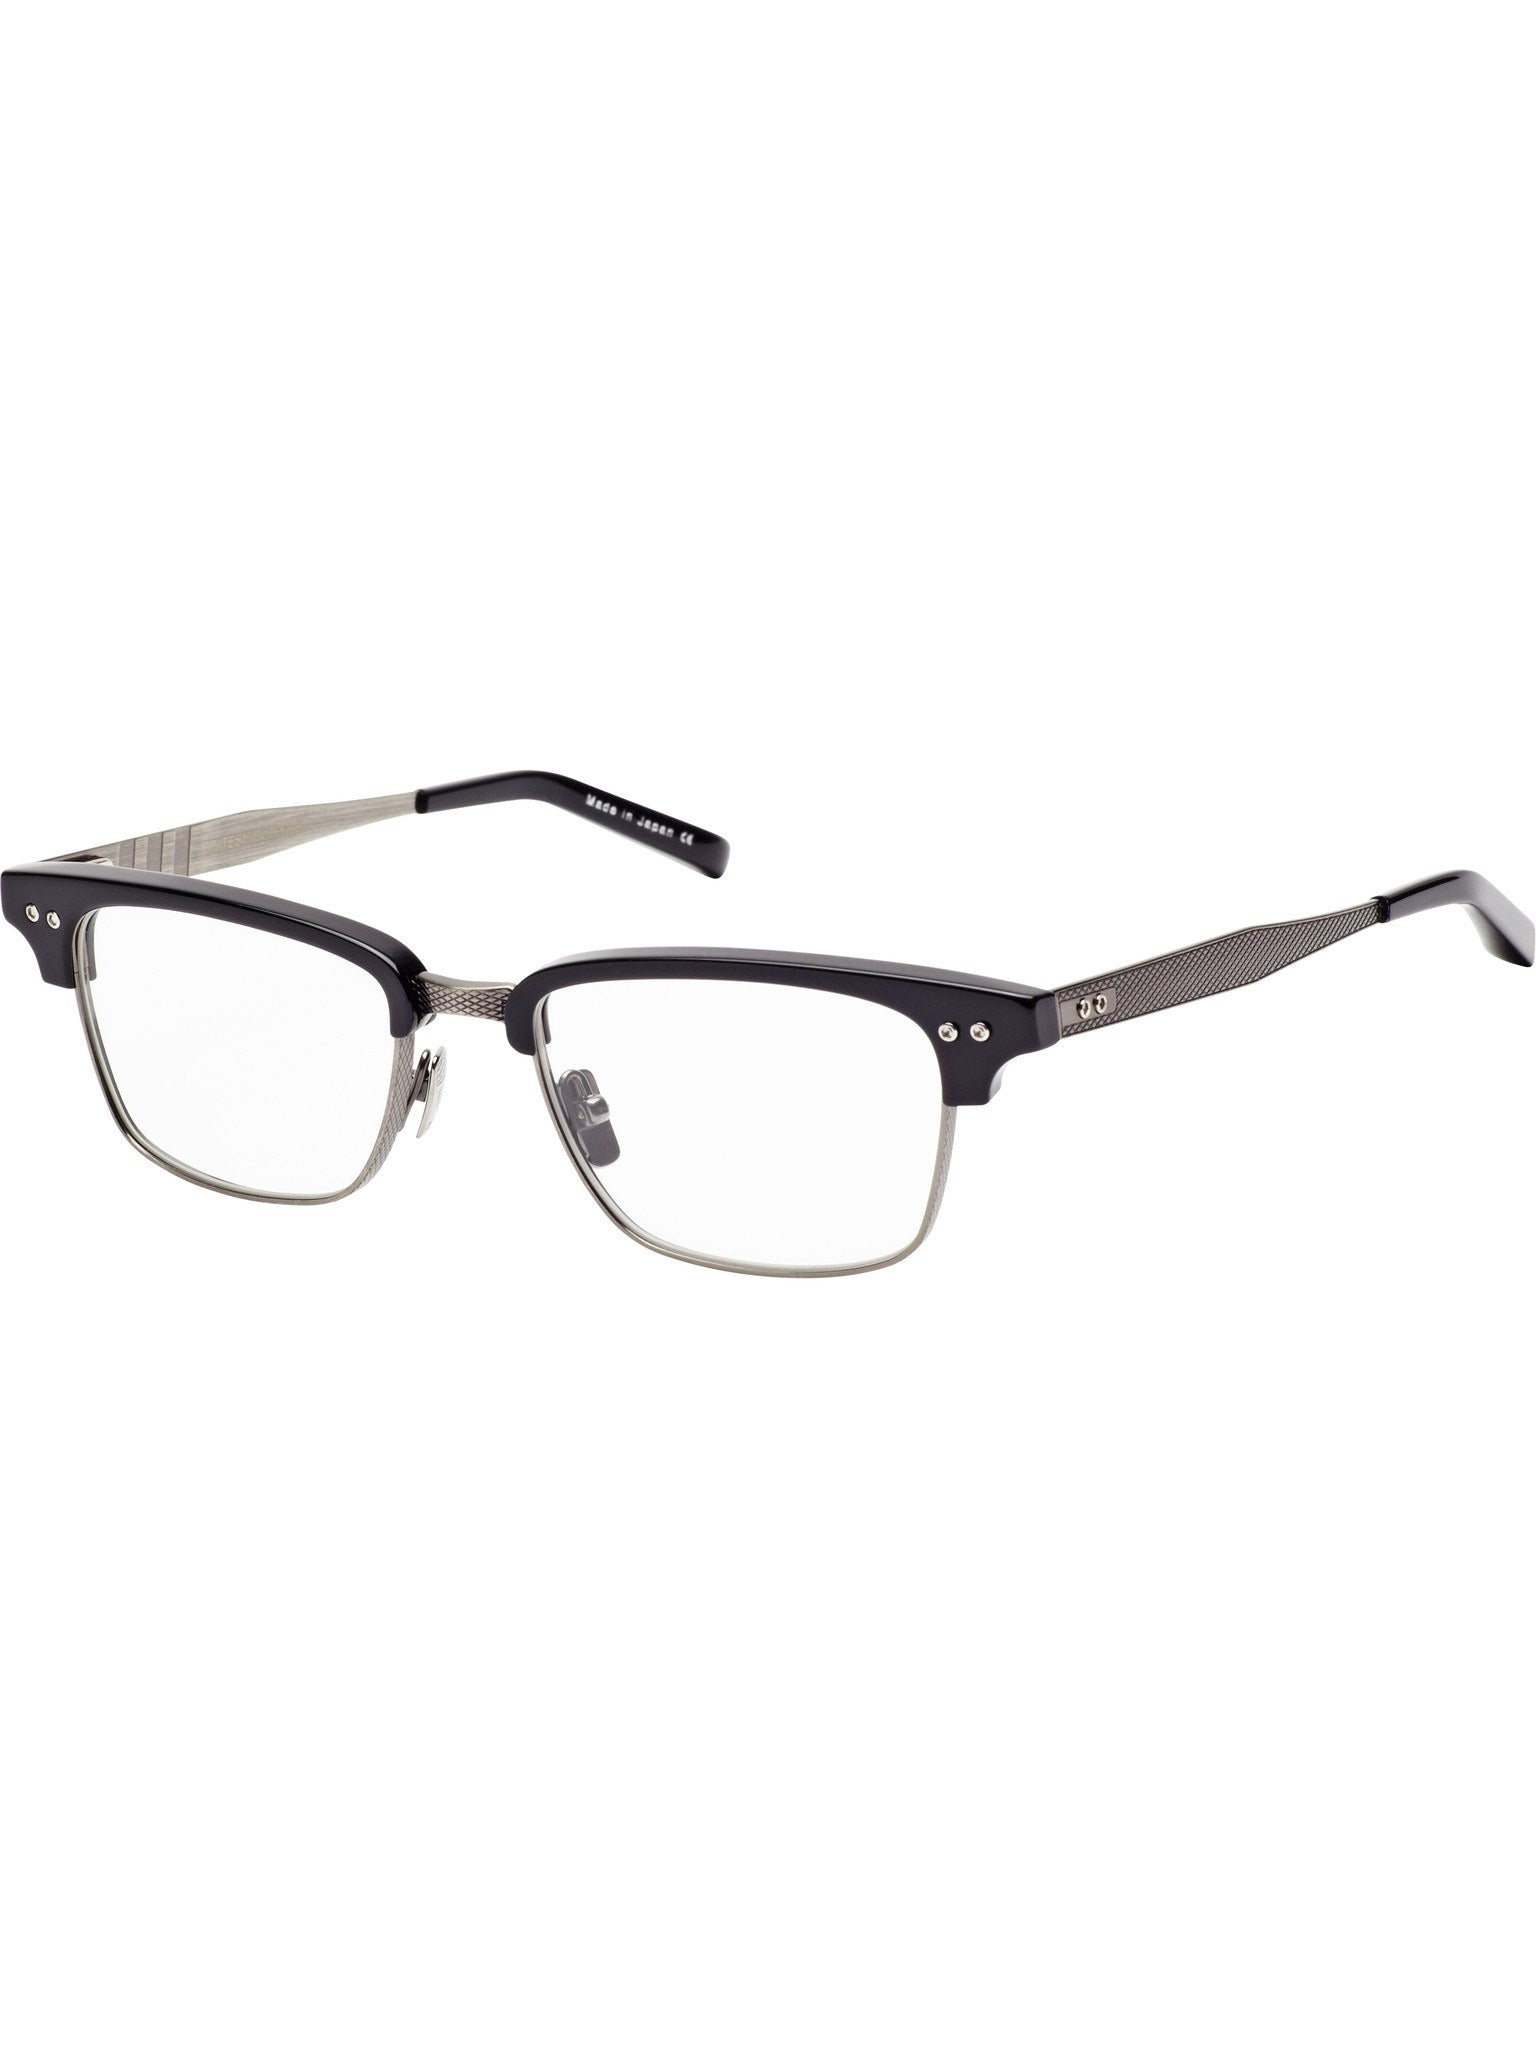 Optical Frame - Dita Statesman Three DRX-2064A